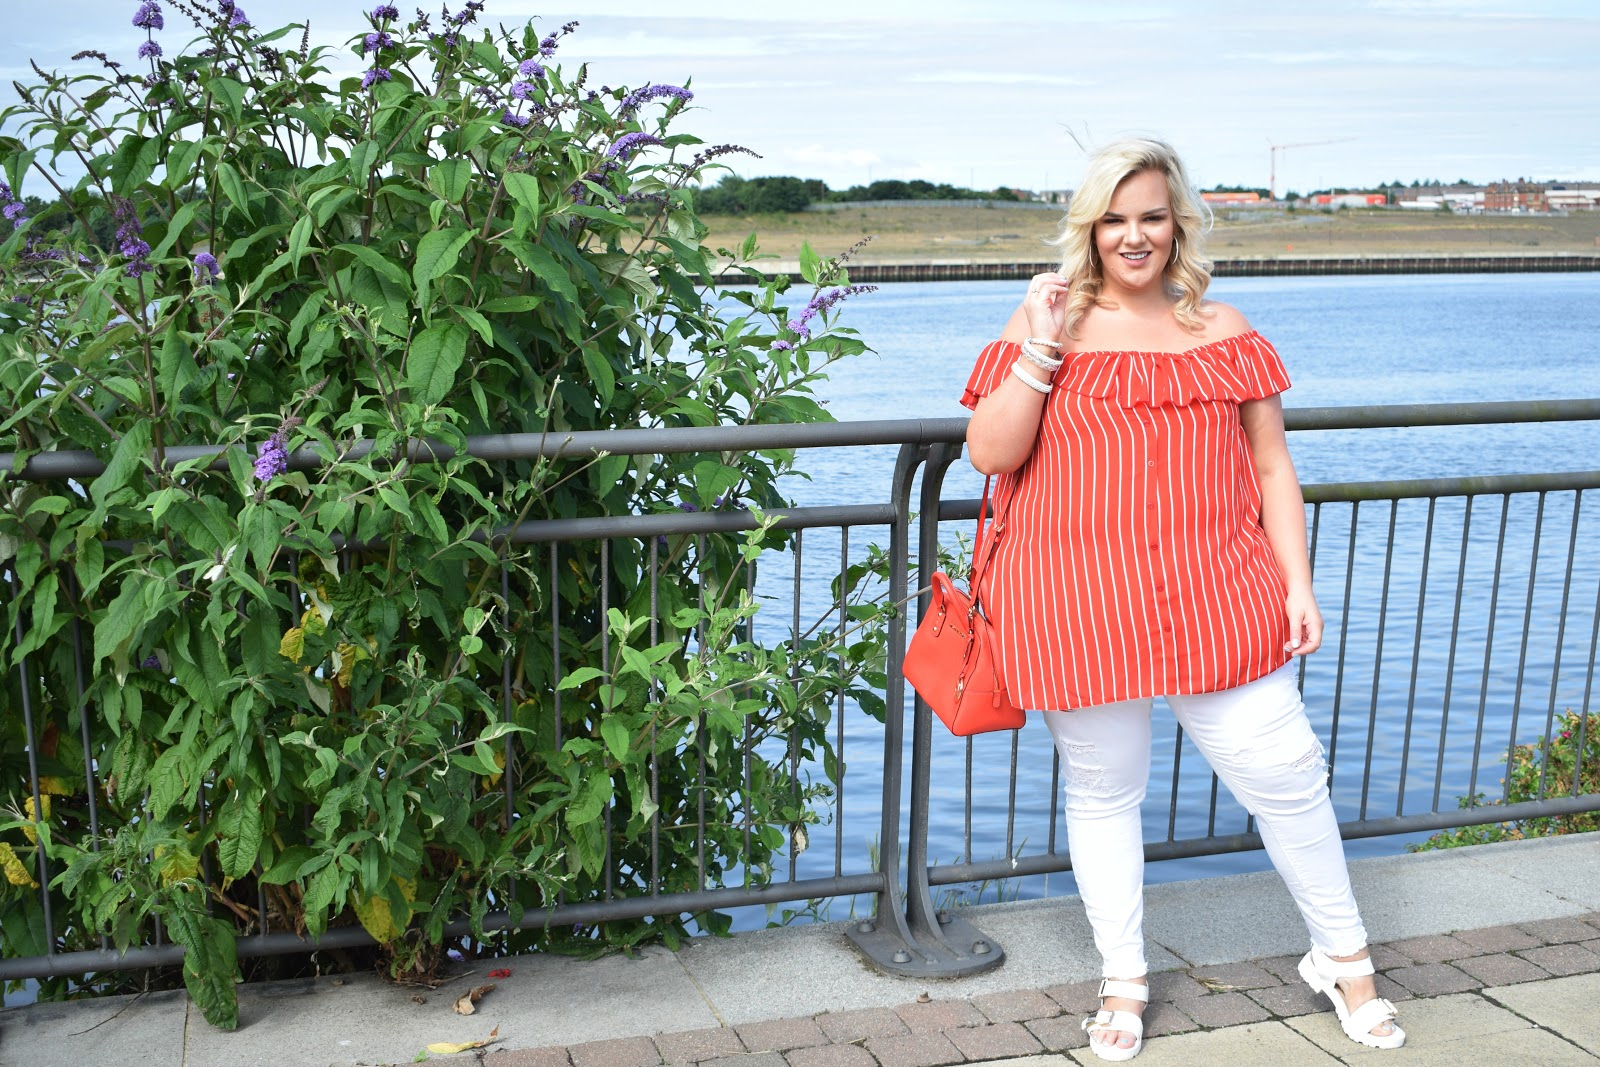 UK Plus Size Fashion Blogger WhatLauraLoves- a Sunderland lass writing about the importance of staying humble